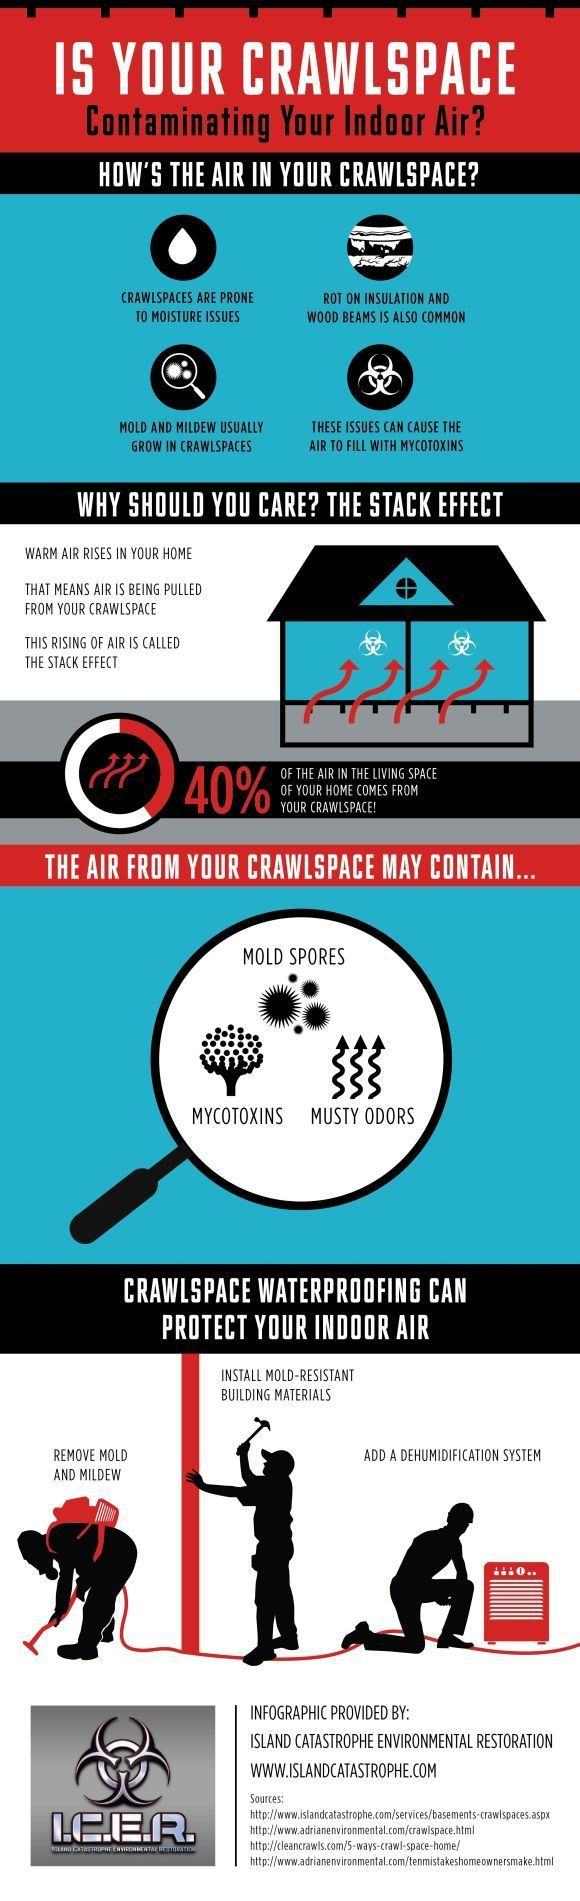 Why Does Mold Grow In Your Crawlspace Summary!